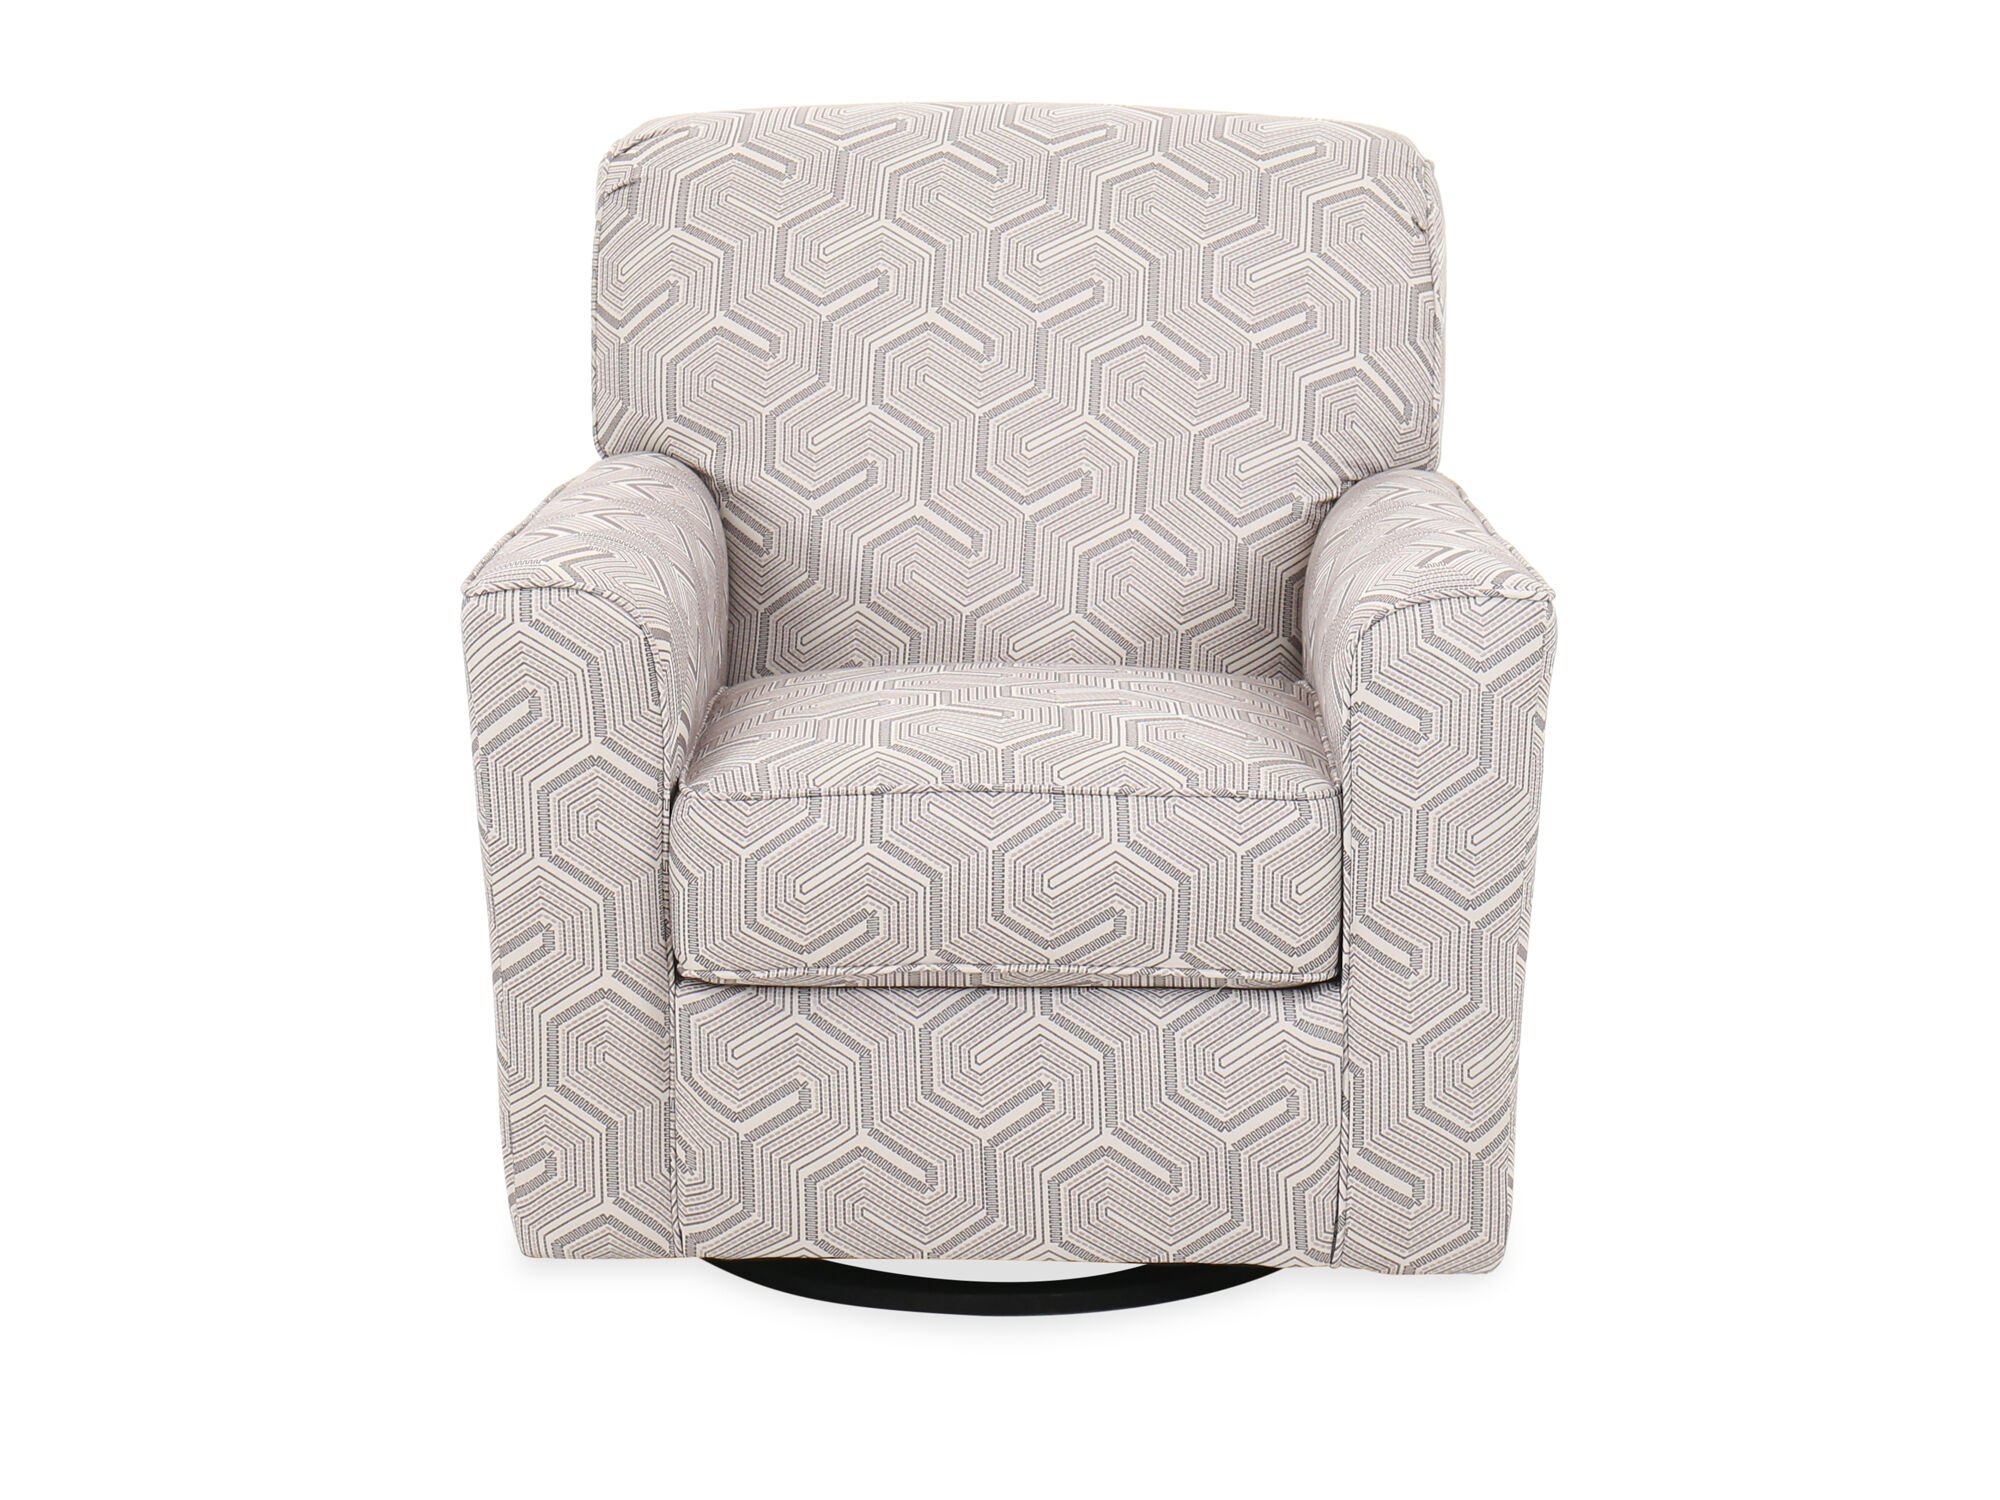 Geometric Patterned Contemporary 36 Swivel Accent Chair